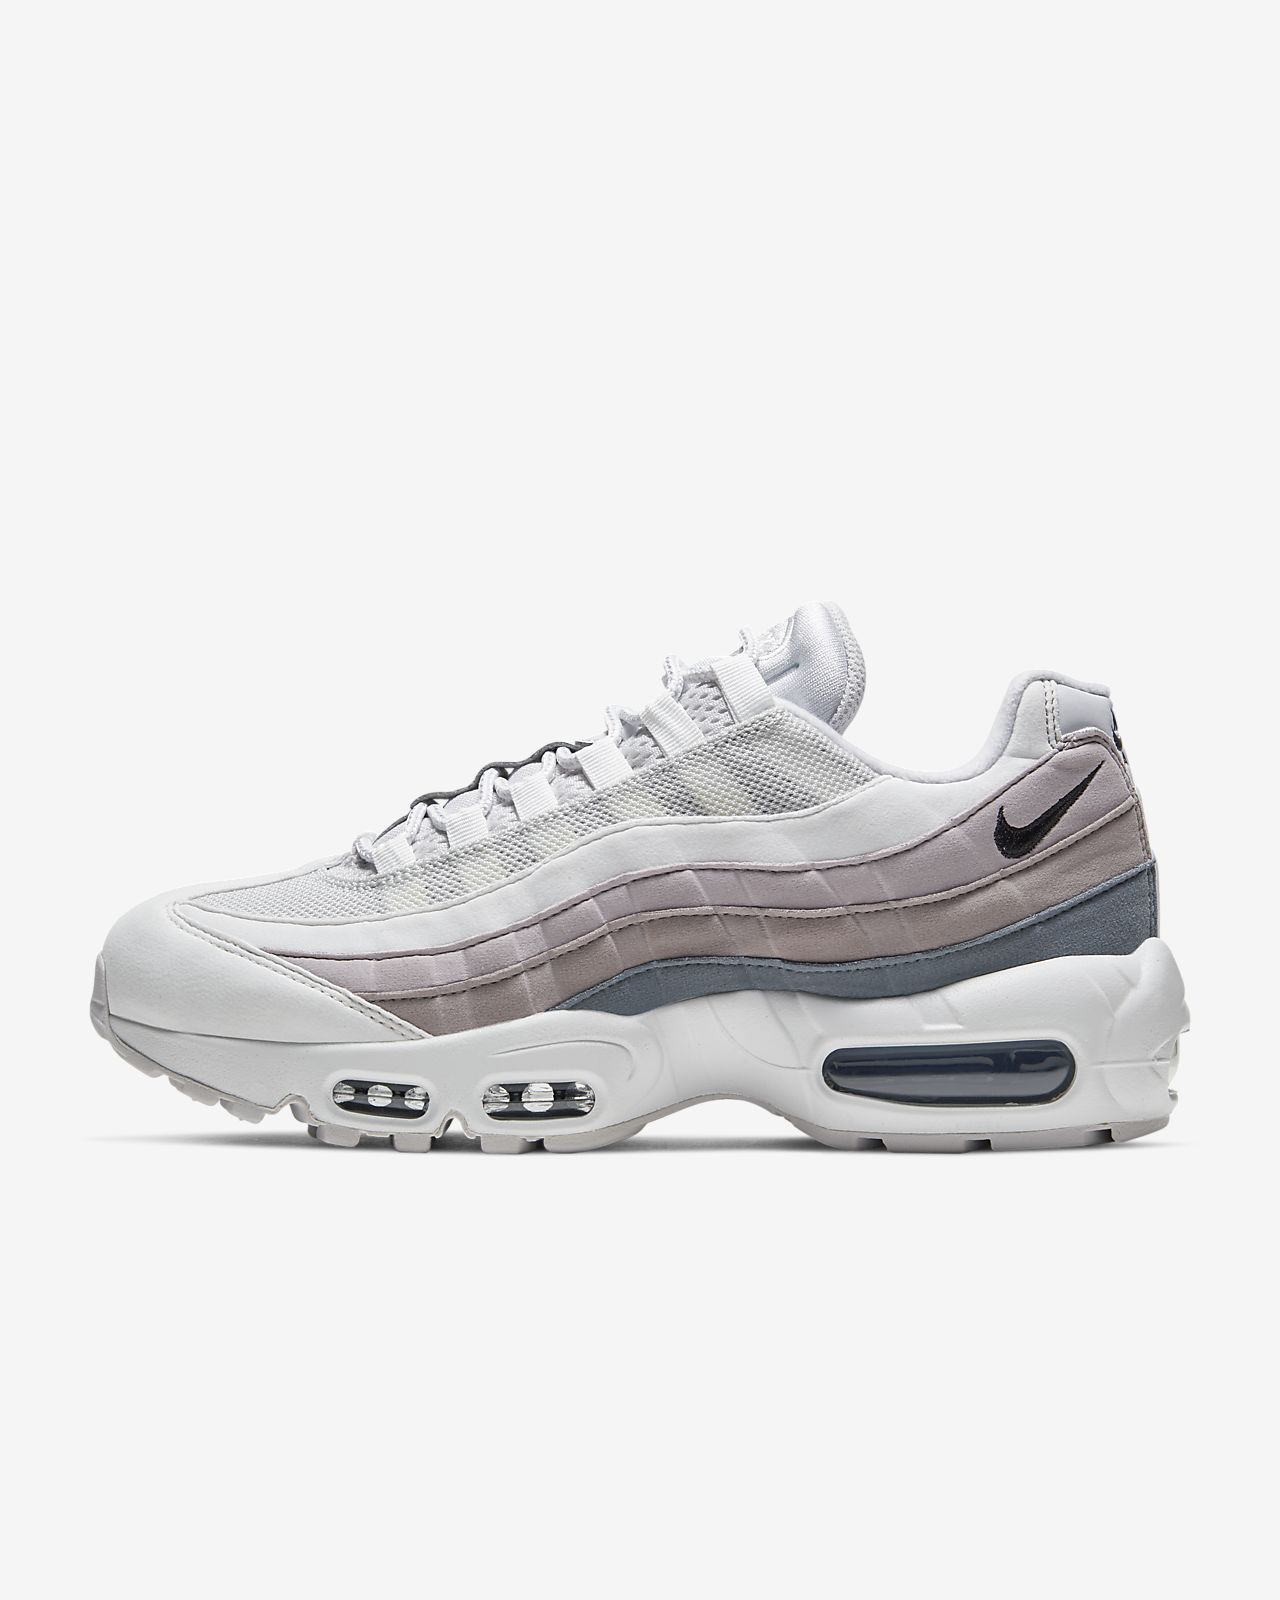 official photos ccb8c 8ba2d ... Nike Air Max 95 Women s Shoe